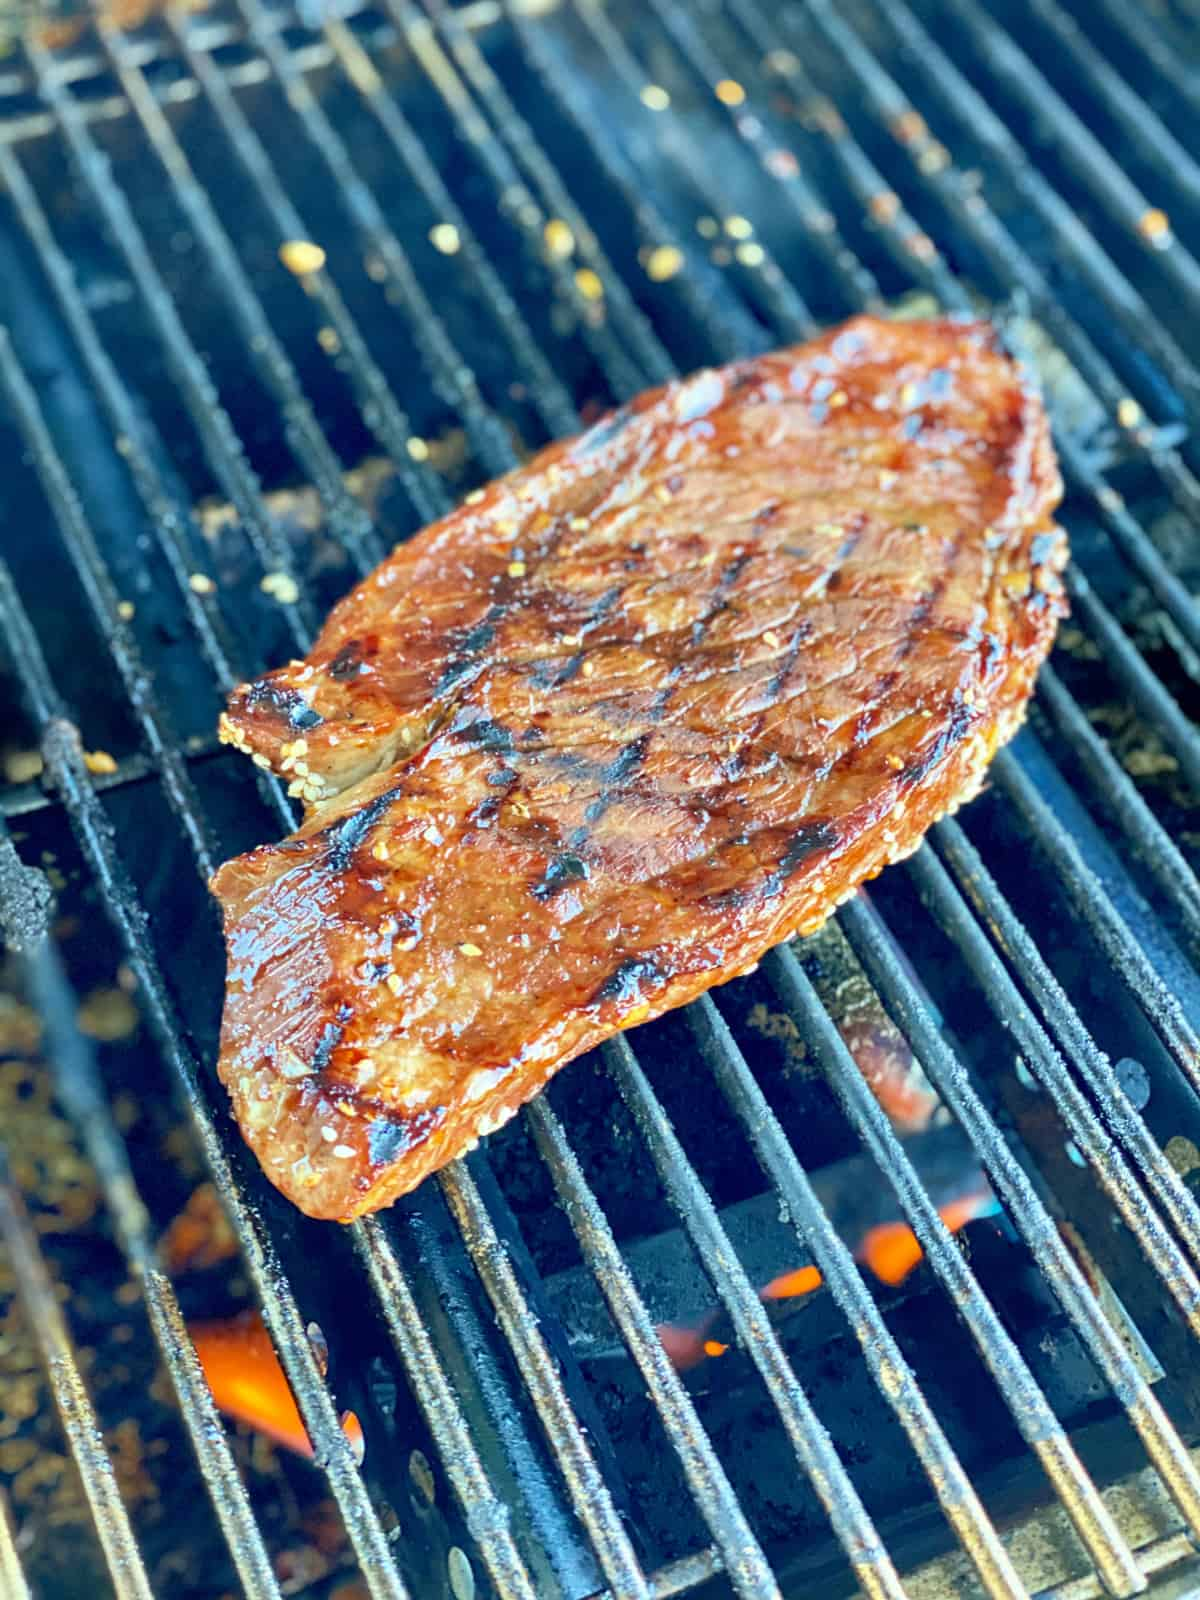 Large london broil steak with grill marks on top of a grill with fire underneath.